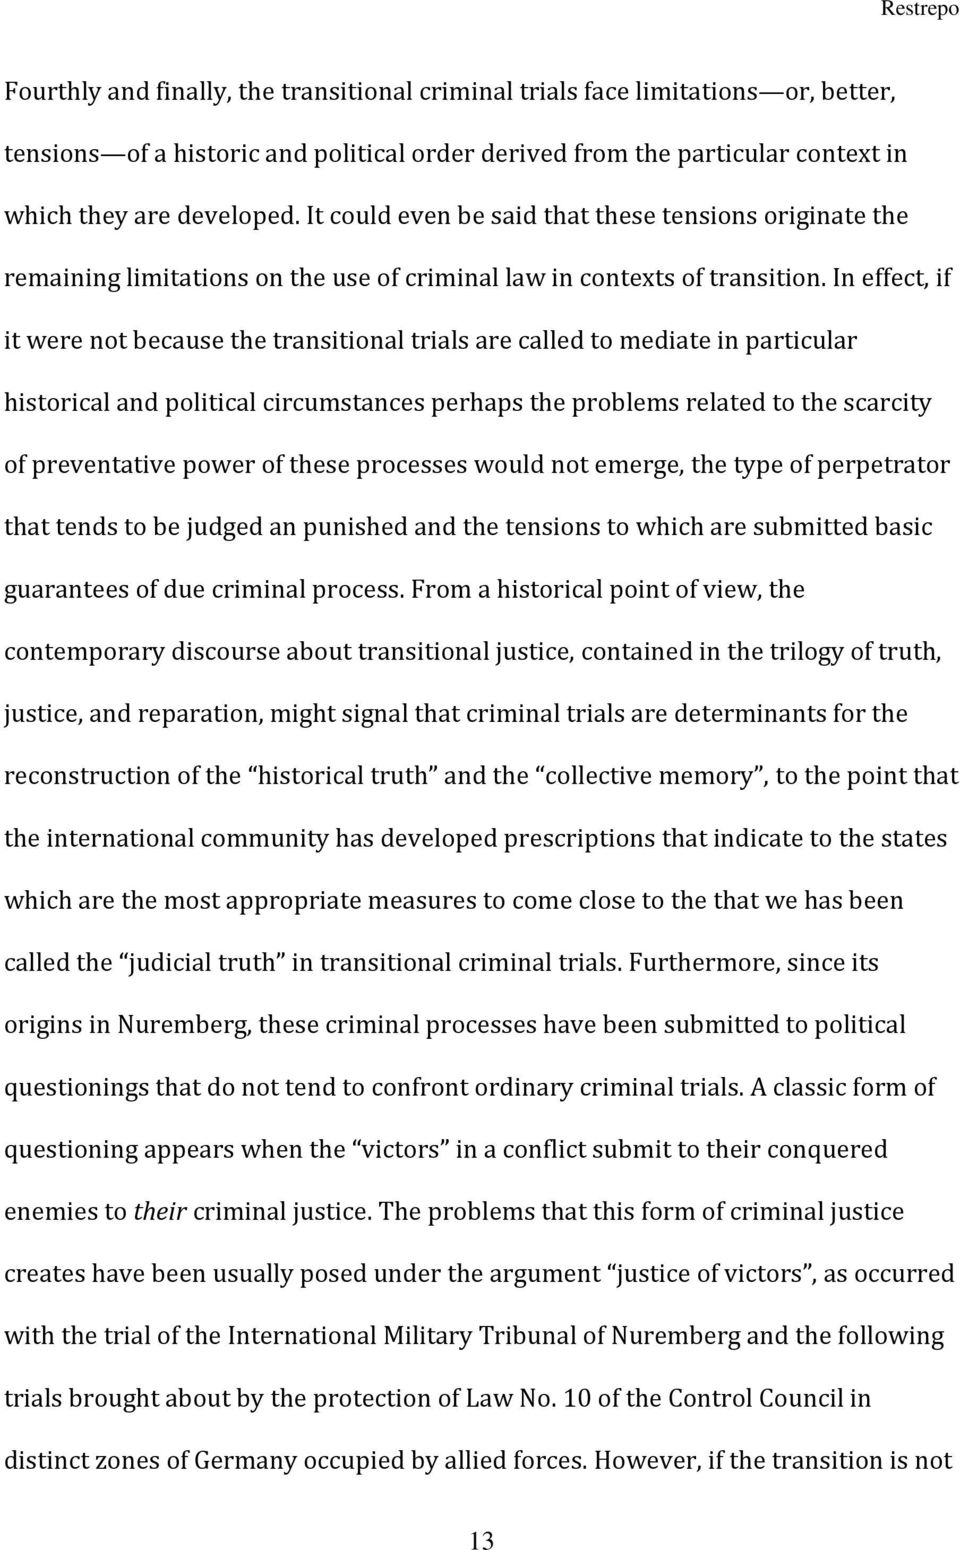 In effect, if it were not because the transitional trials are called to mediate in particular historical and political circumstances perhaps the problems related to the scarcity of preventative power